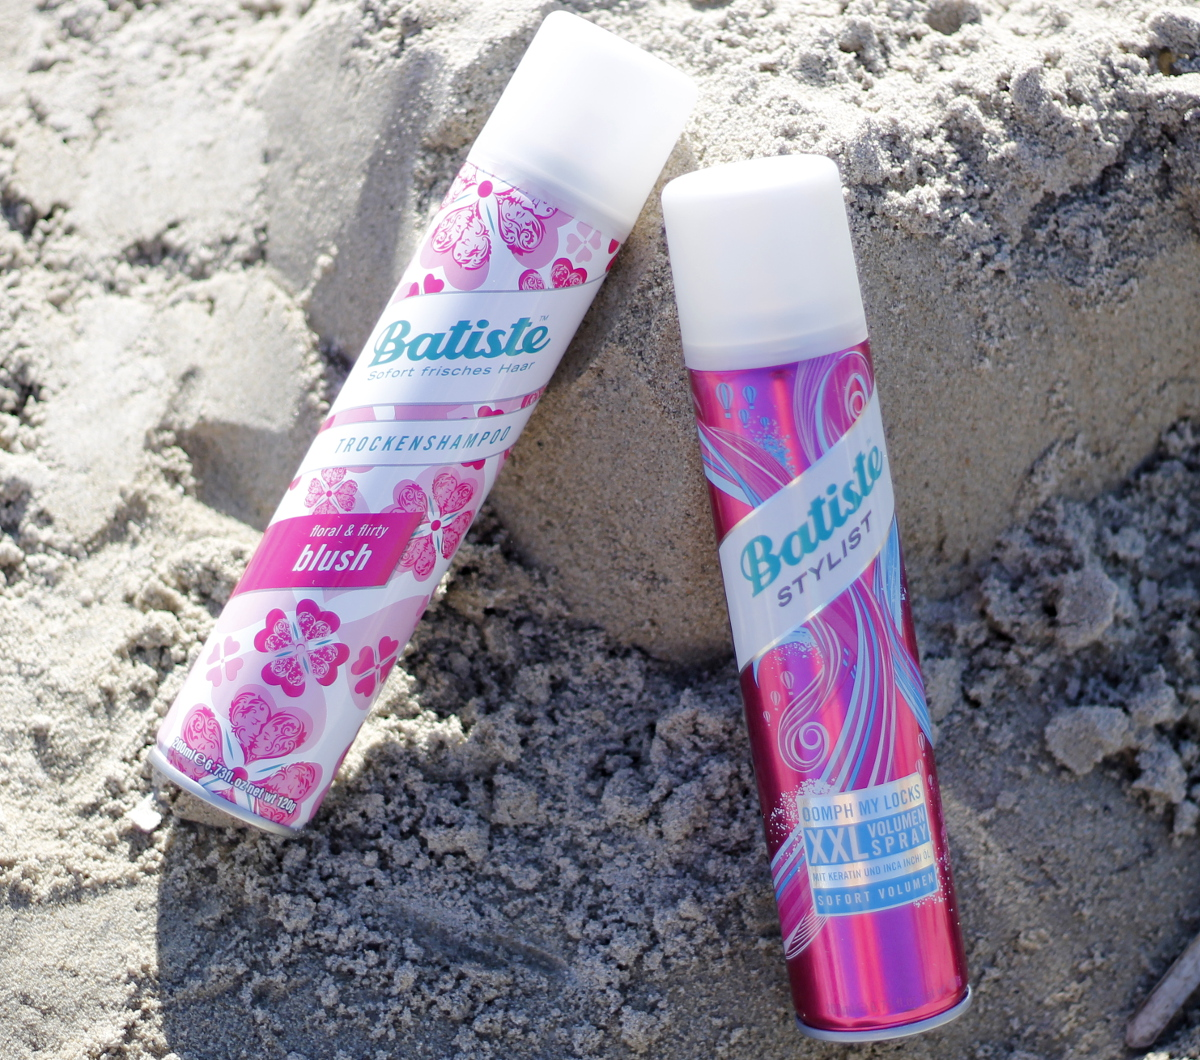 batiste-blush-xxl-volume-spray